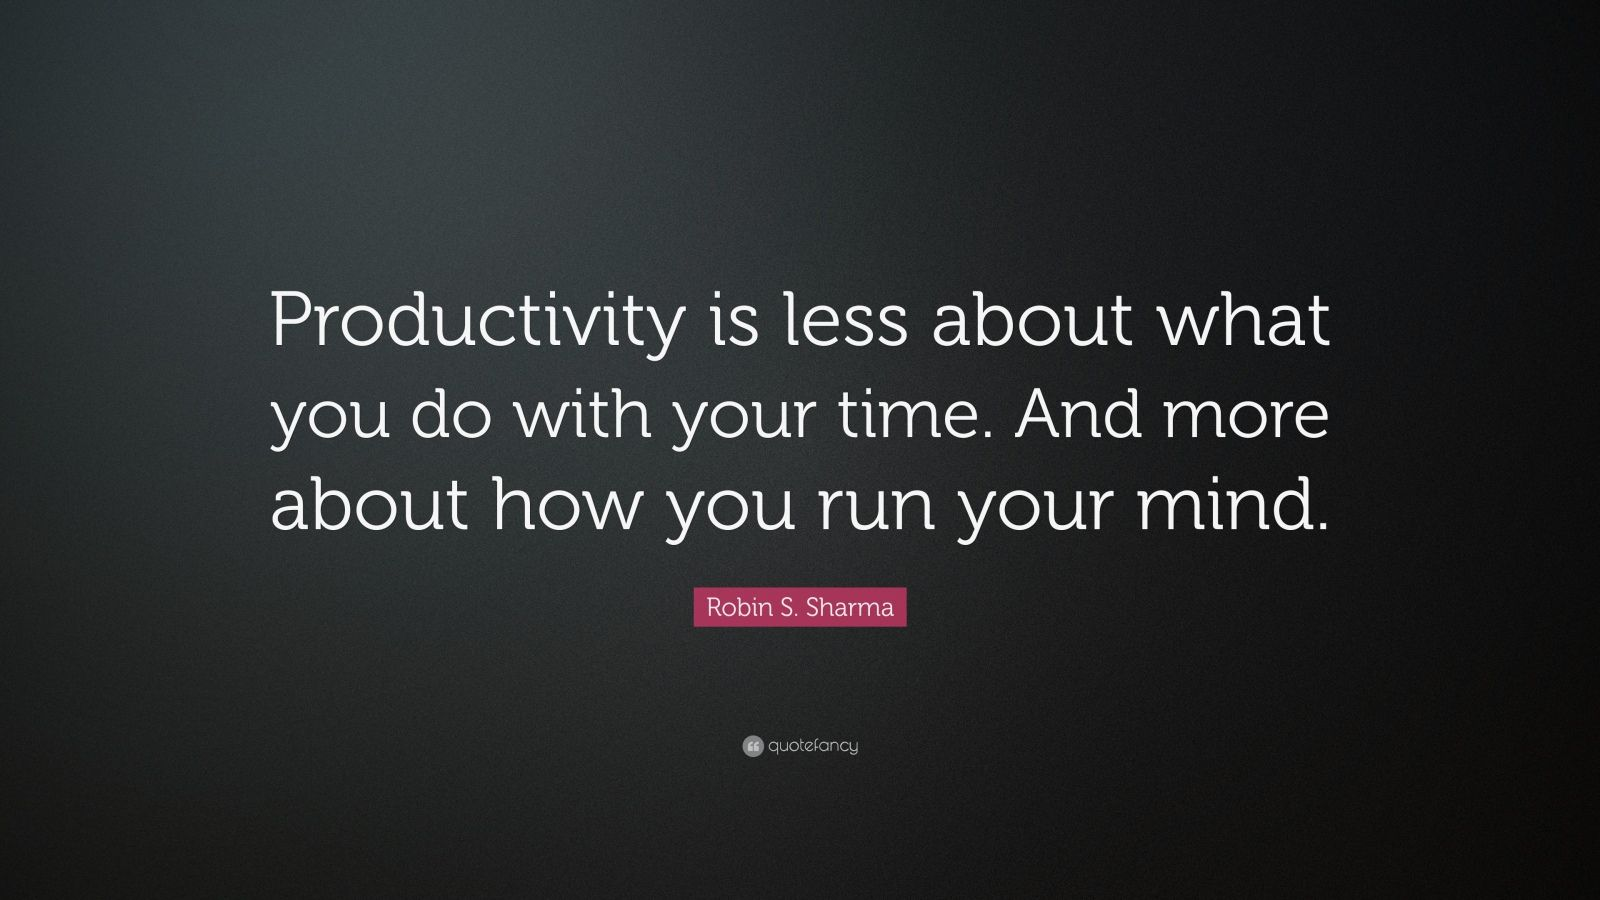 """Productivity Quotes: """"Productivity is less about what you do with your time. And more about how you run your mind."""" — Robin S. Sharma"""